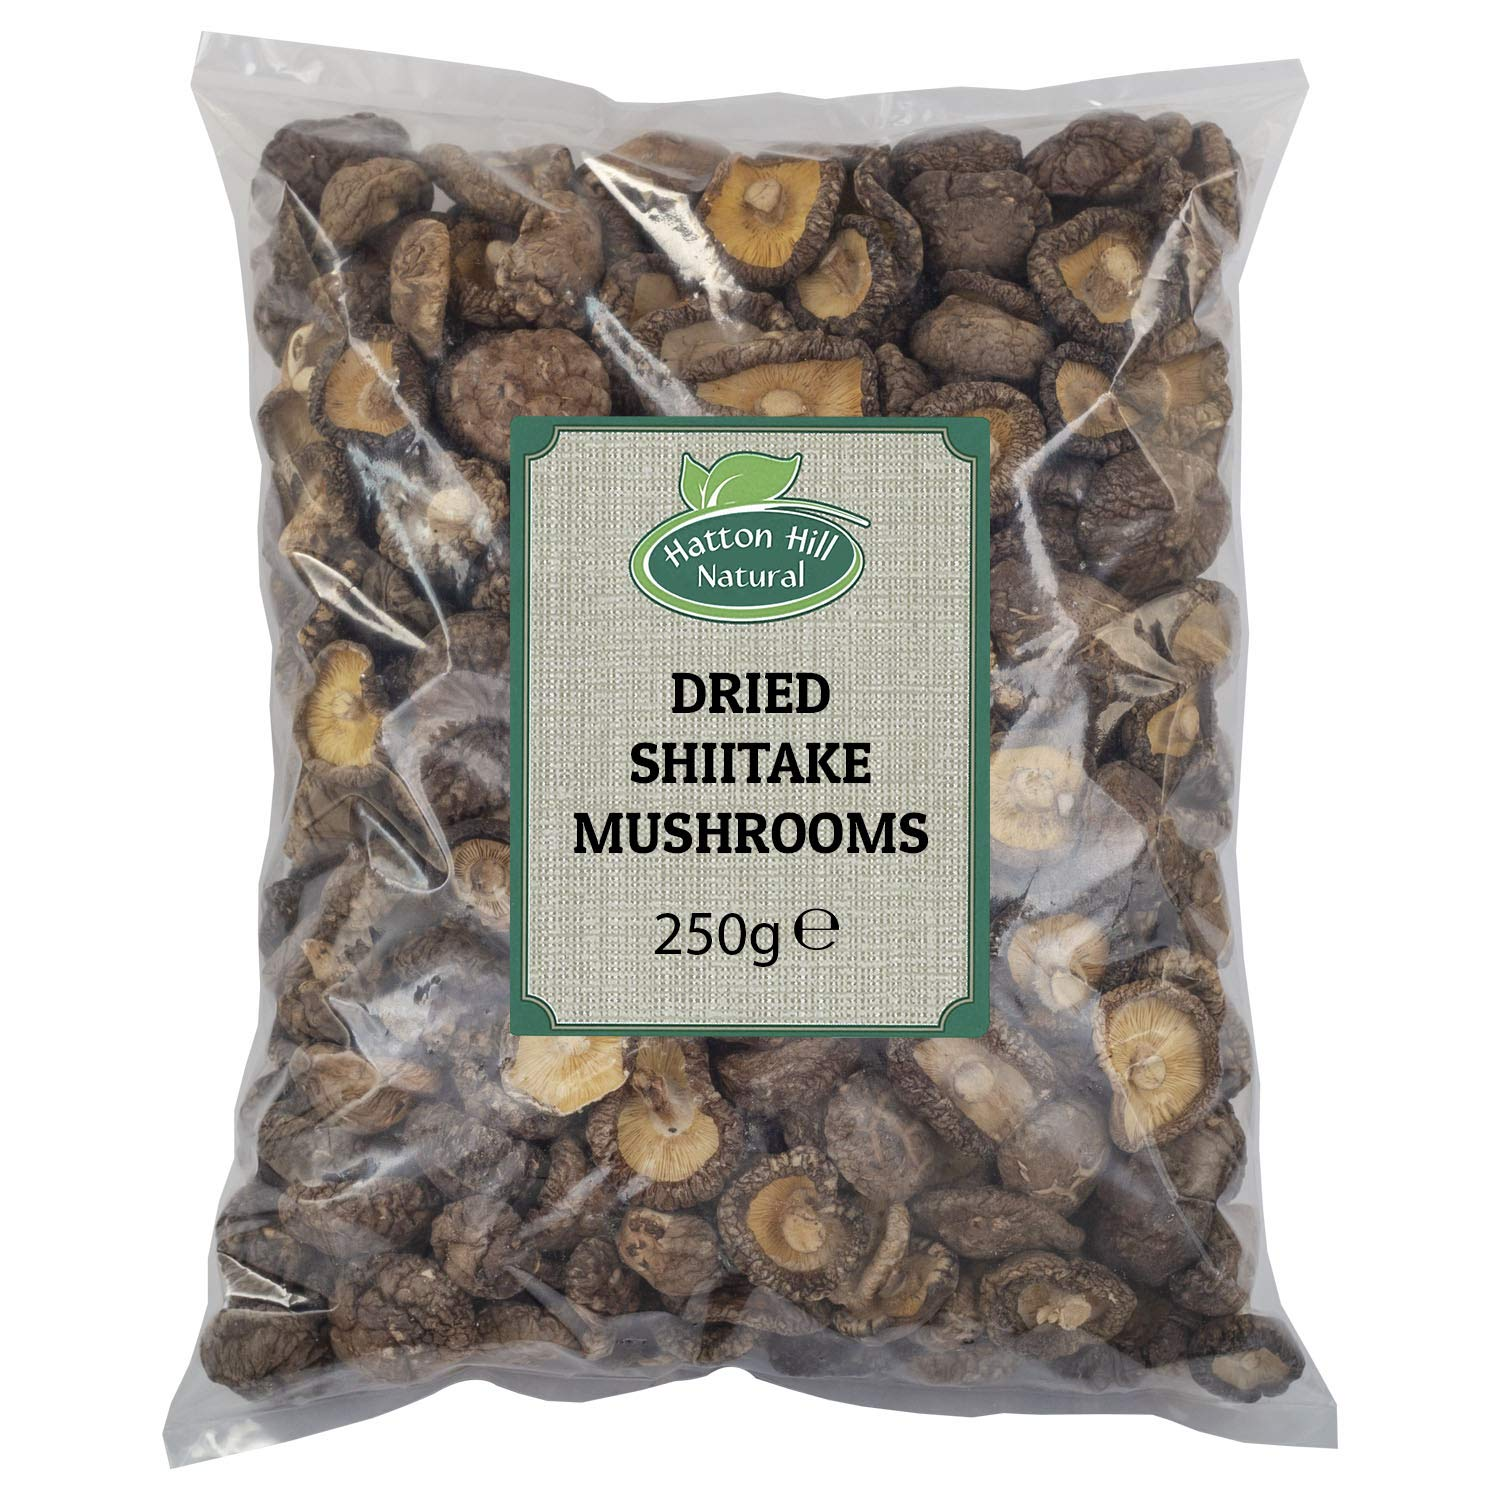 Dried Whole Shiitake Mushrooms 250g - Free UK Delivery